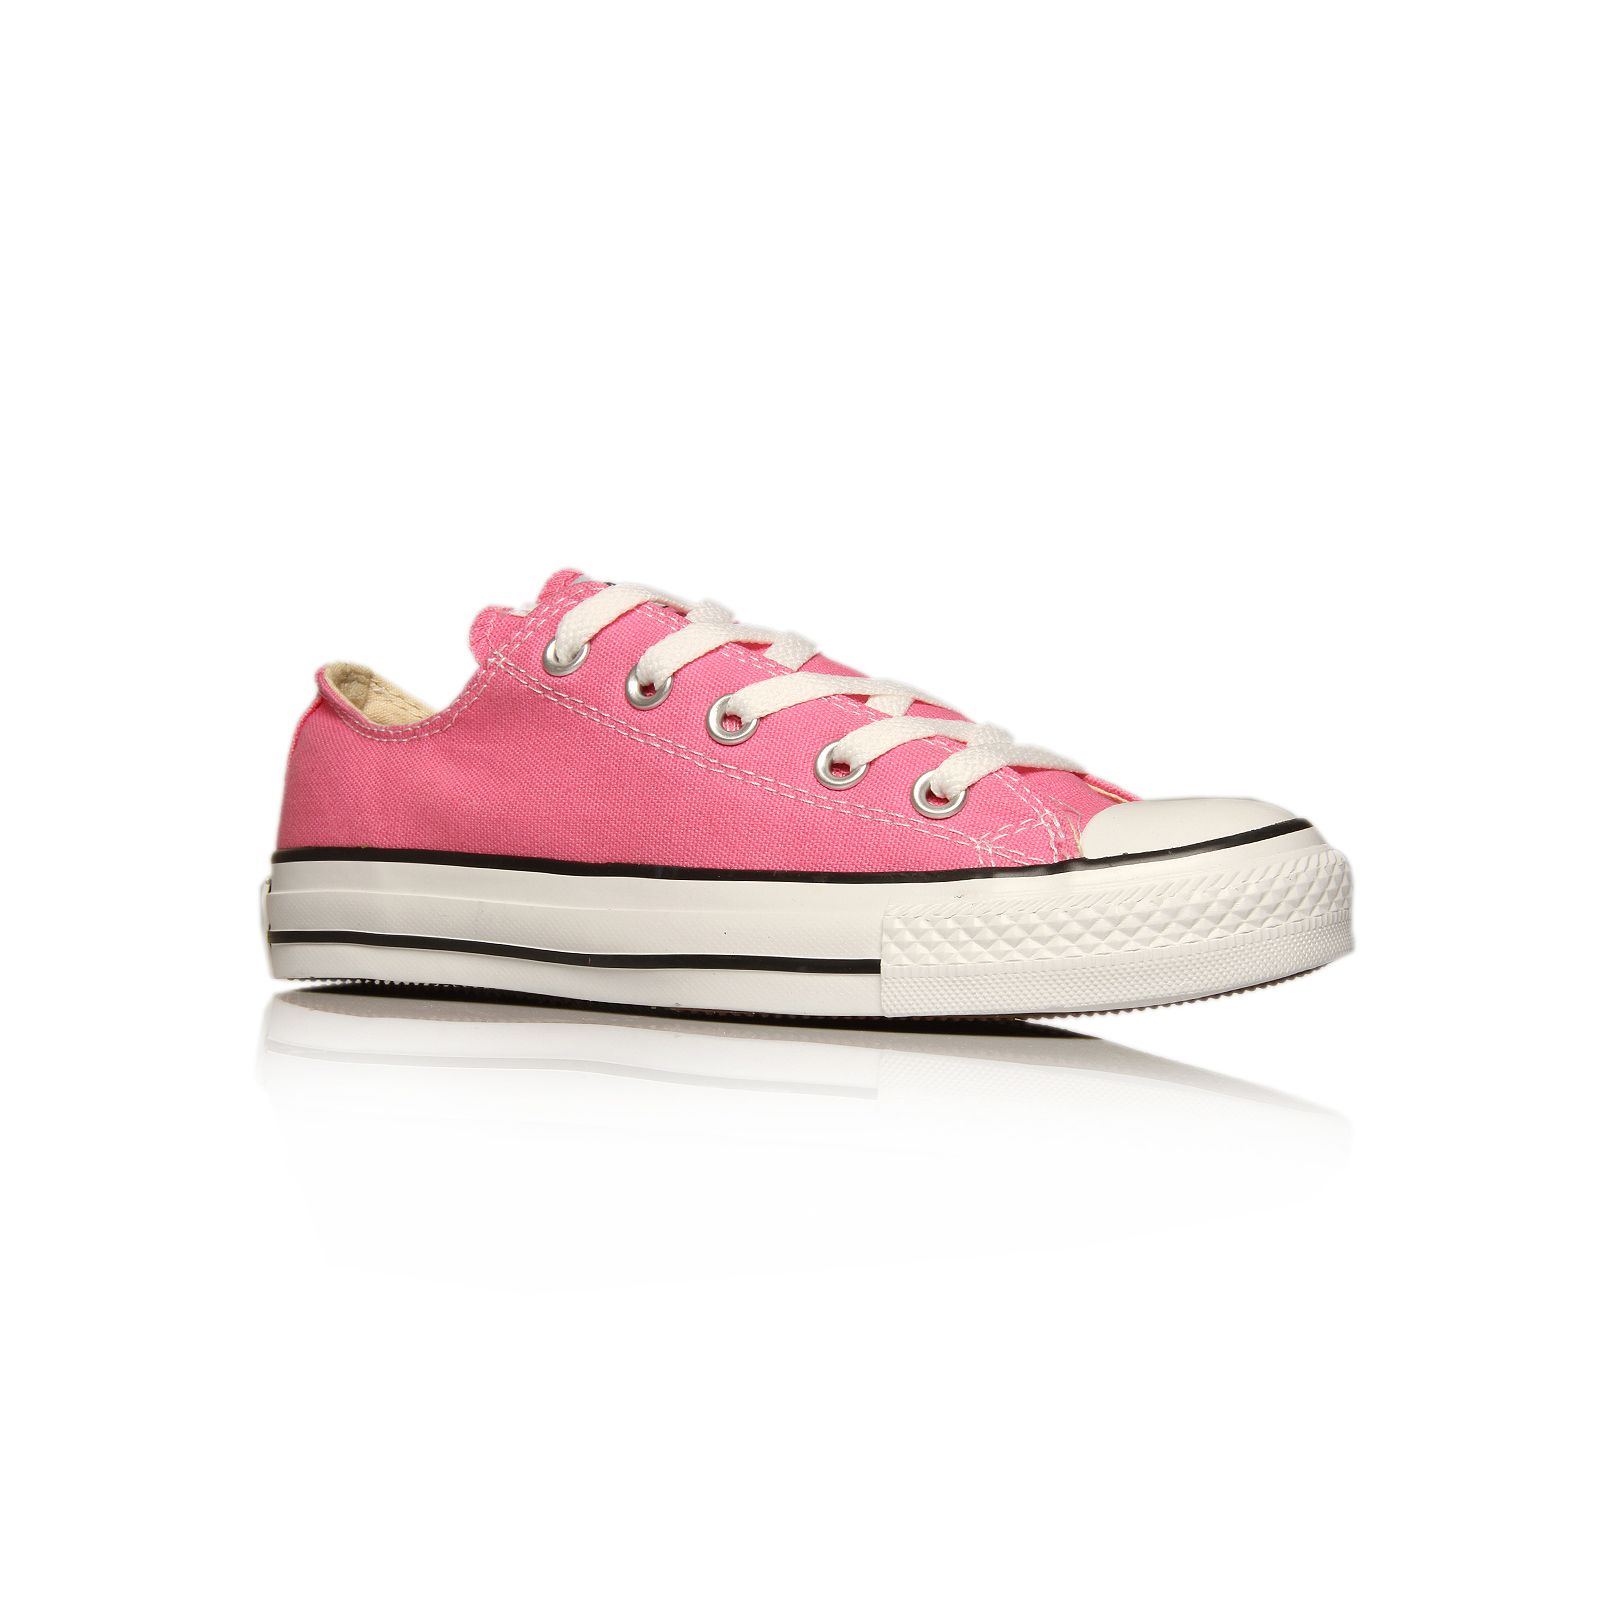 Chuck Taylor low top trainers